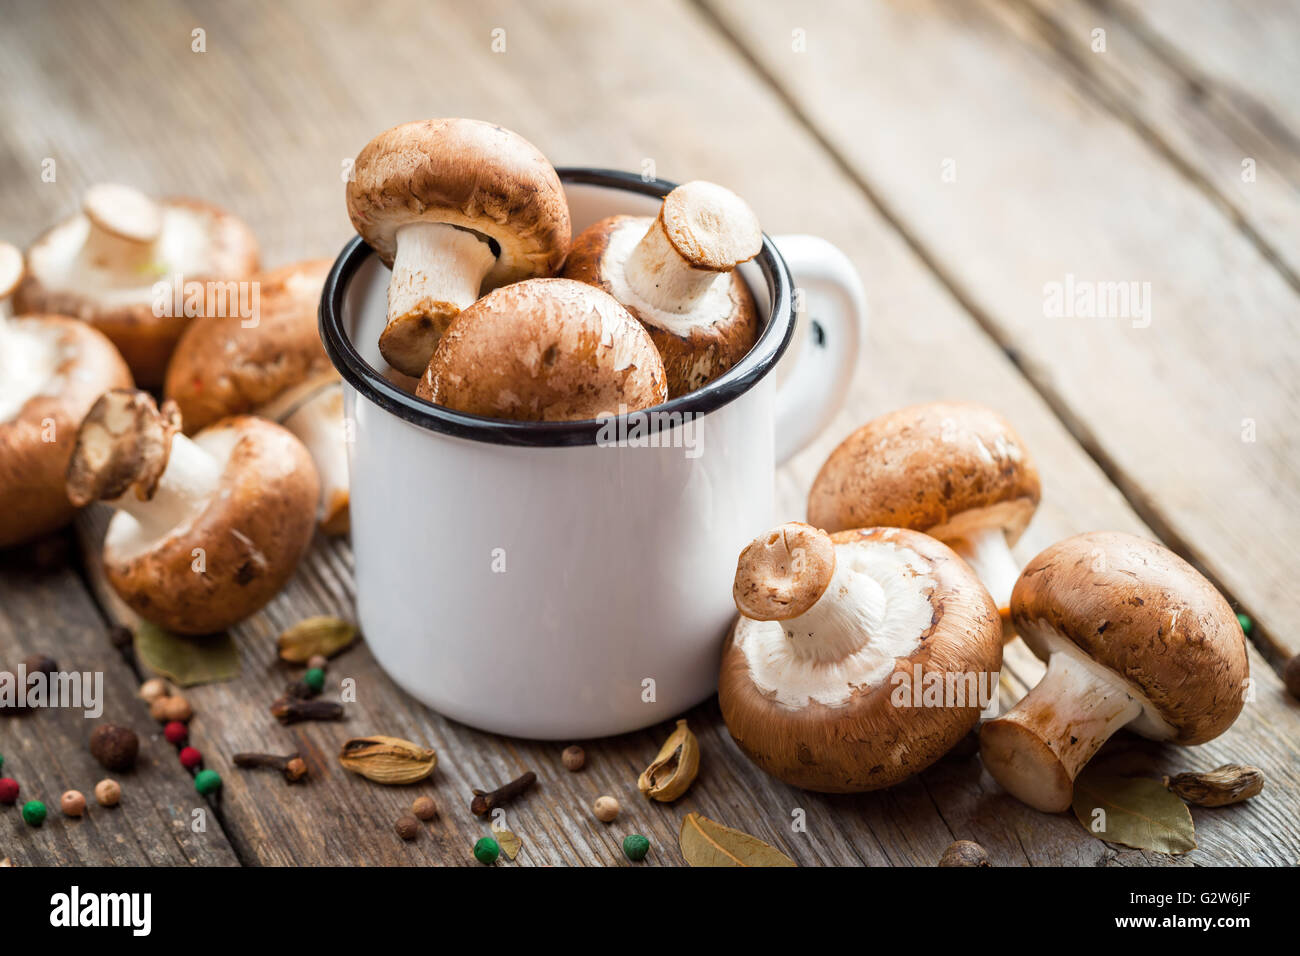 Mushrooms champignons in mug and spices on old wooden table. - Stock Image